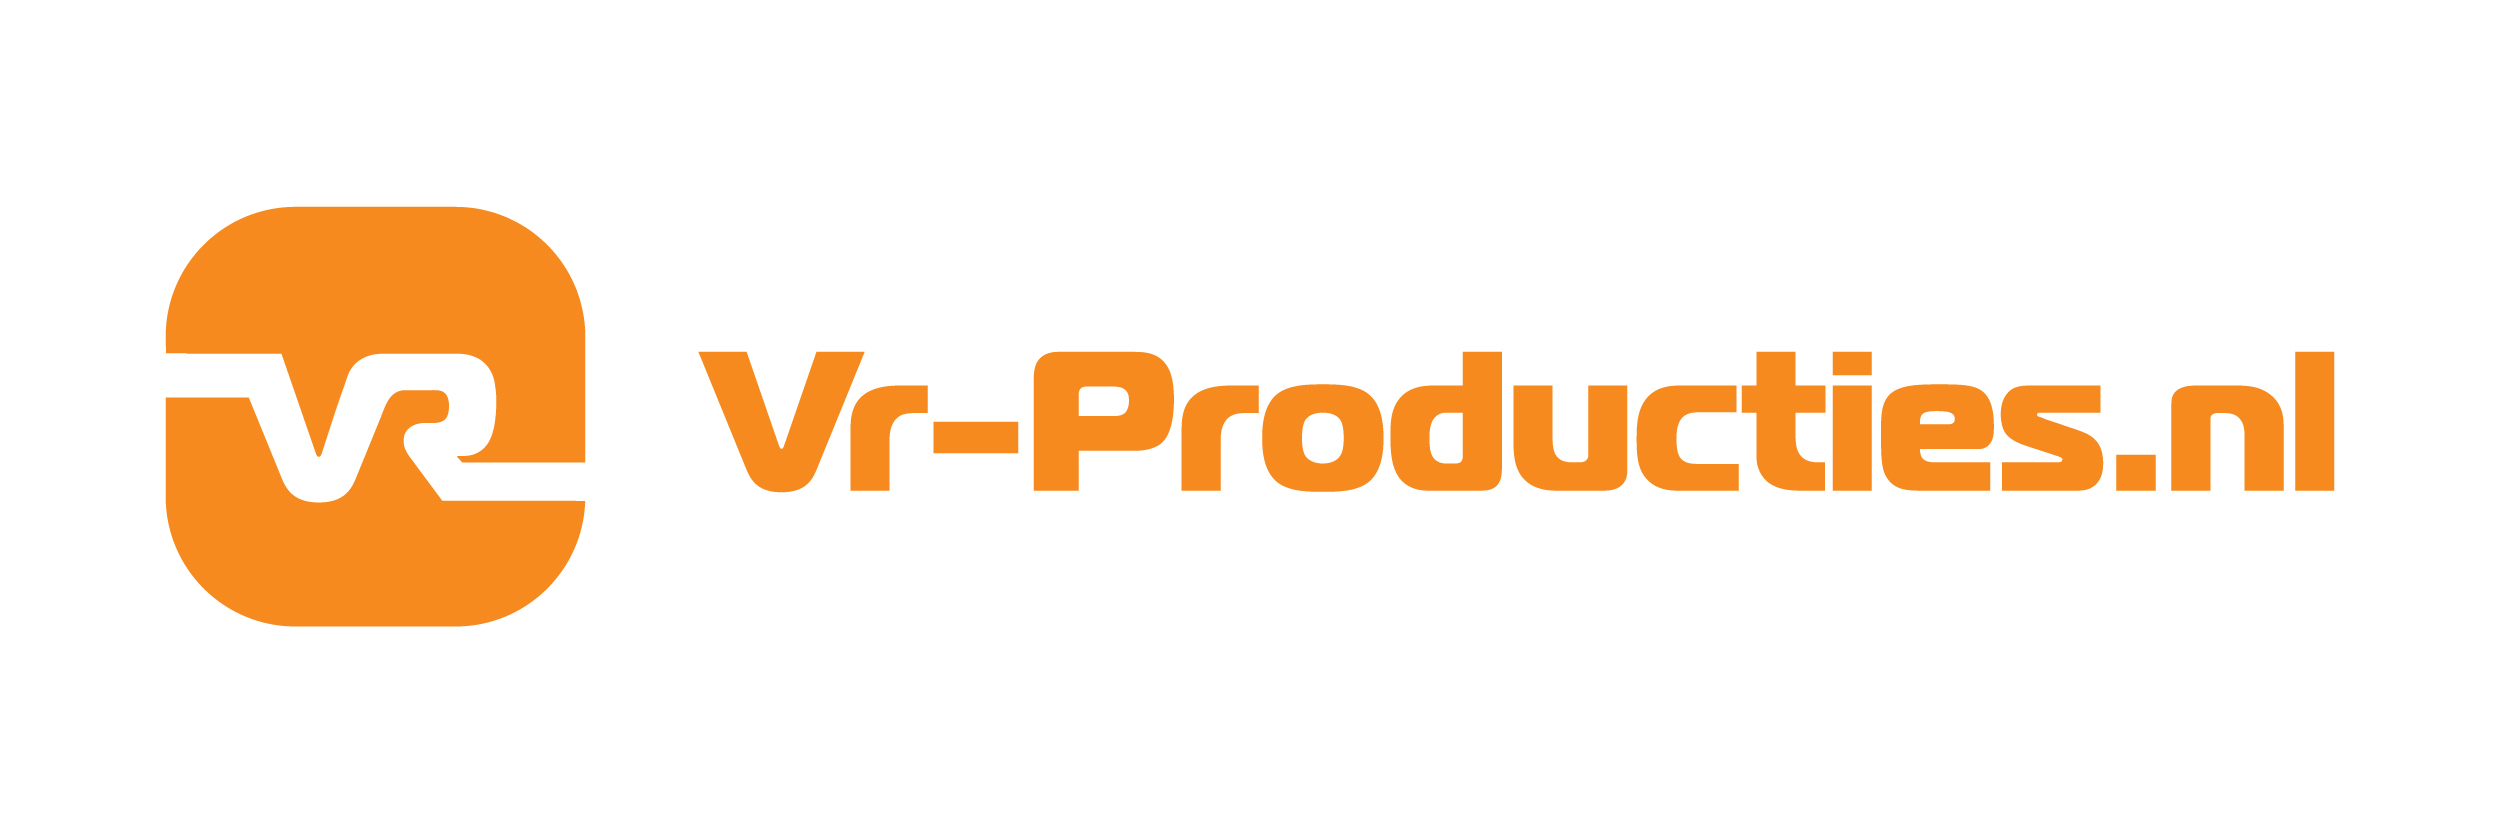 Vr-producties.nl |Galaxygames./nl